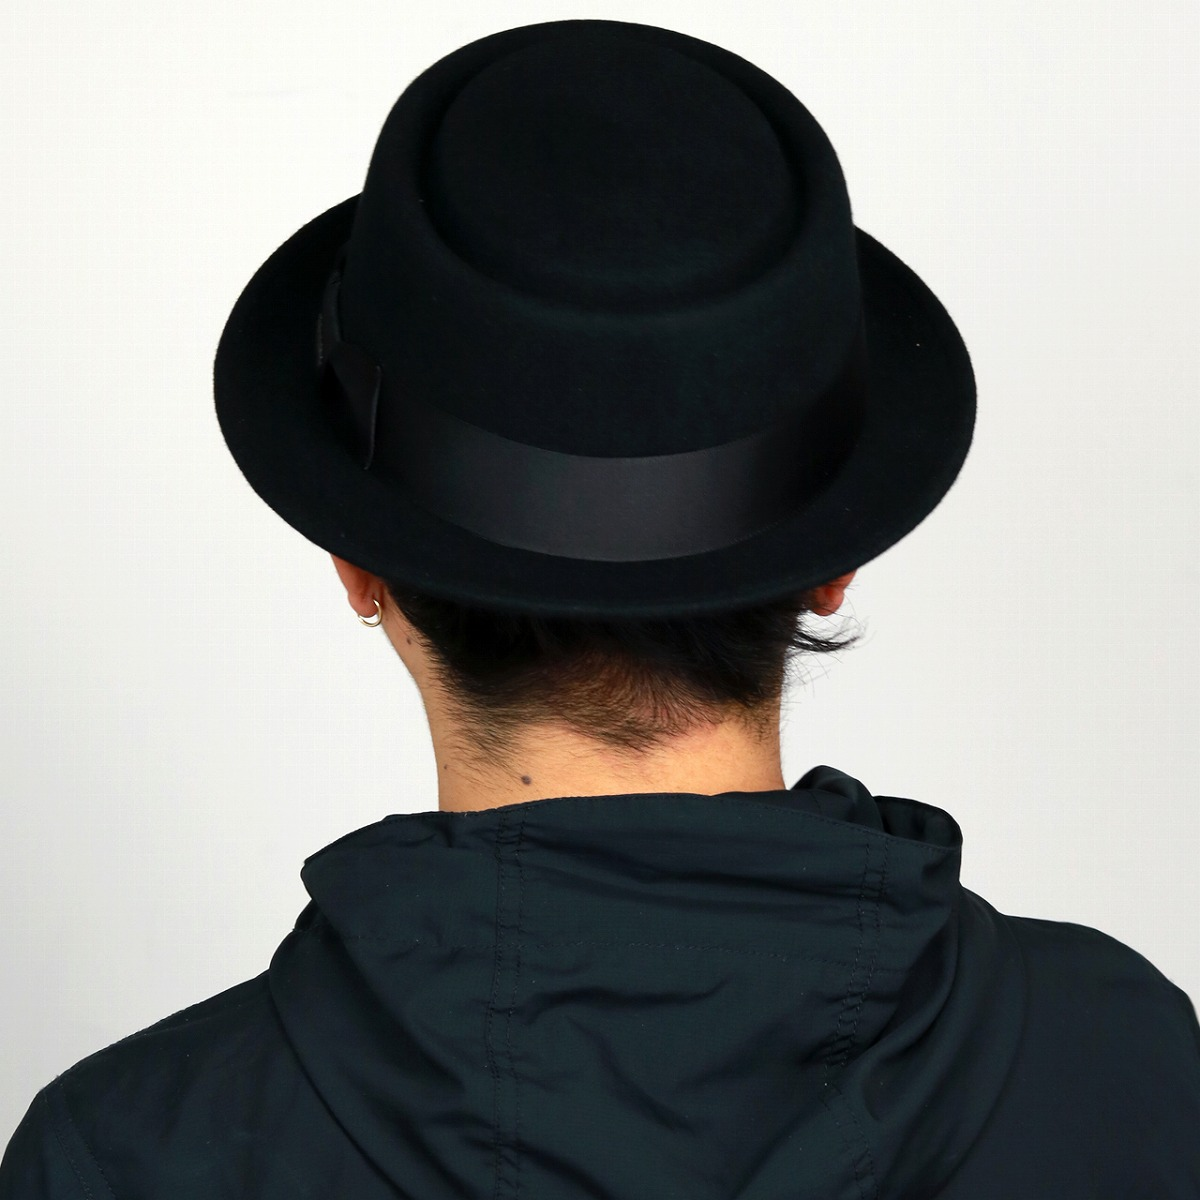 08a23050f The pork pie men STETSON hat size large size XL size wool felt hat Shin  pull plain fabric / black black [pork-pie hat] stetson hat mail order hat  ...